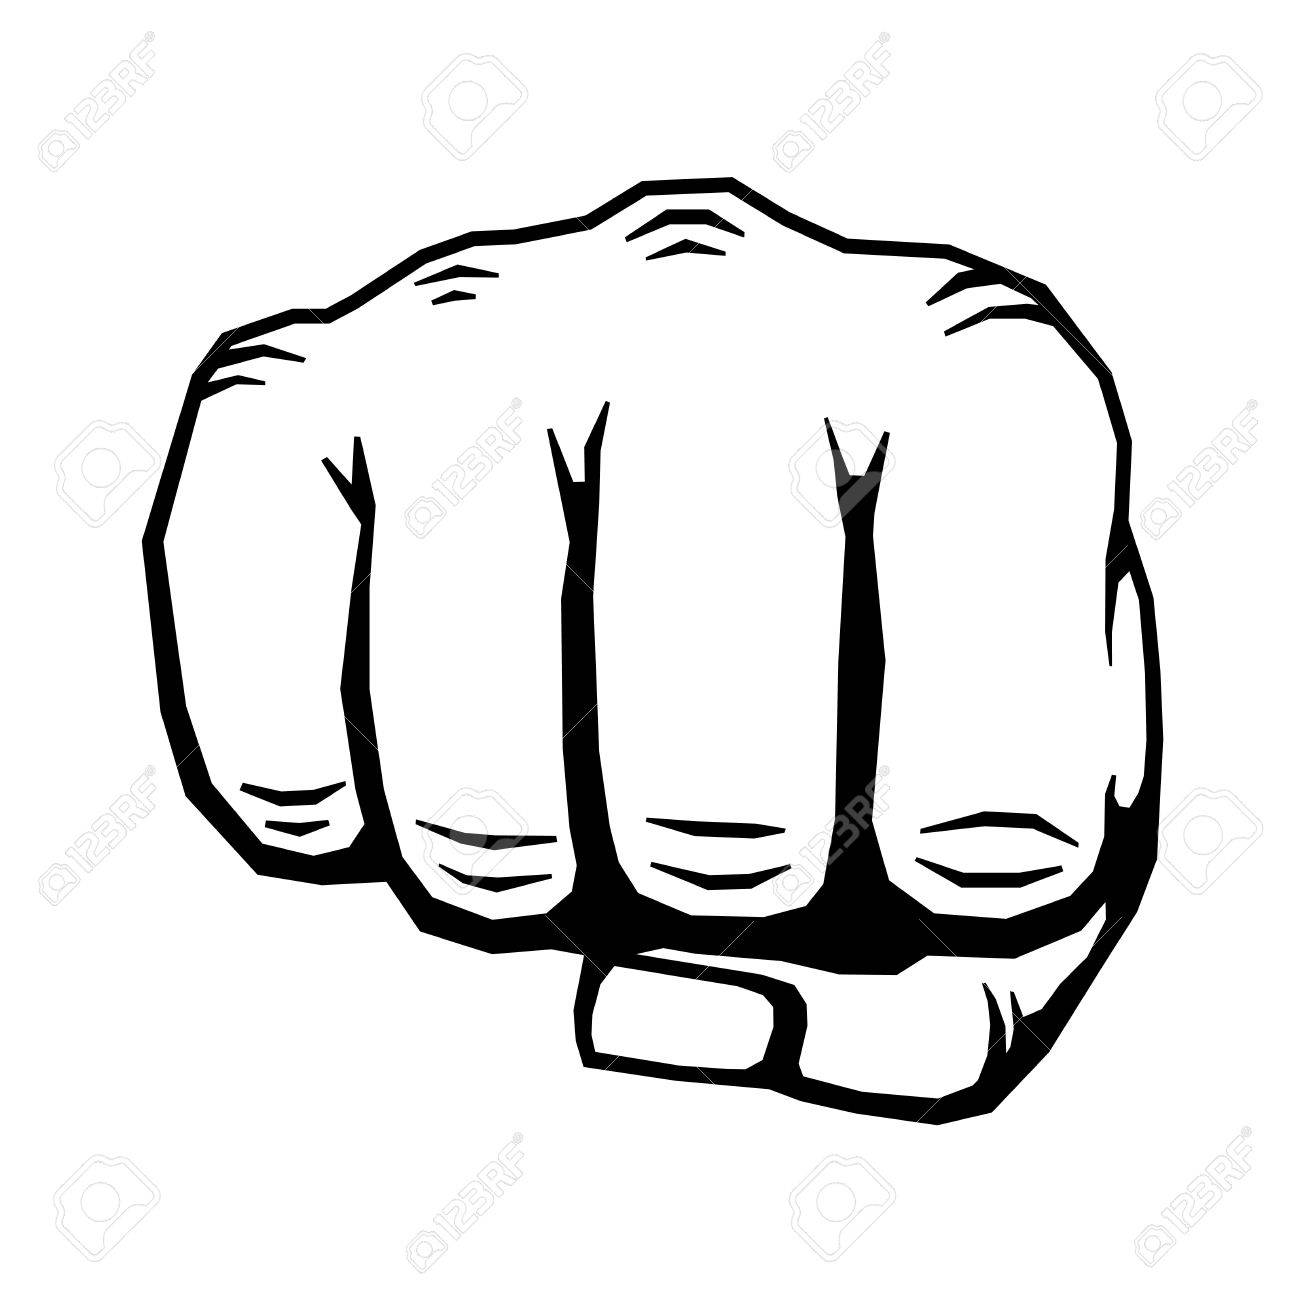 punching hand with clenched fist vector human clenched fist rh 123rf com first victoria national bank fist vector free